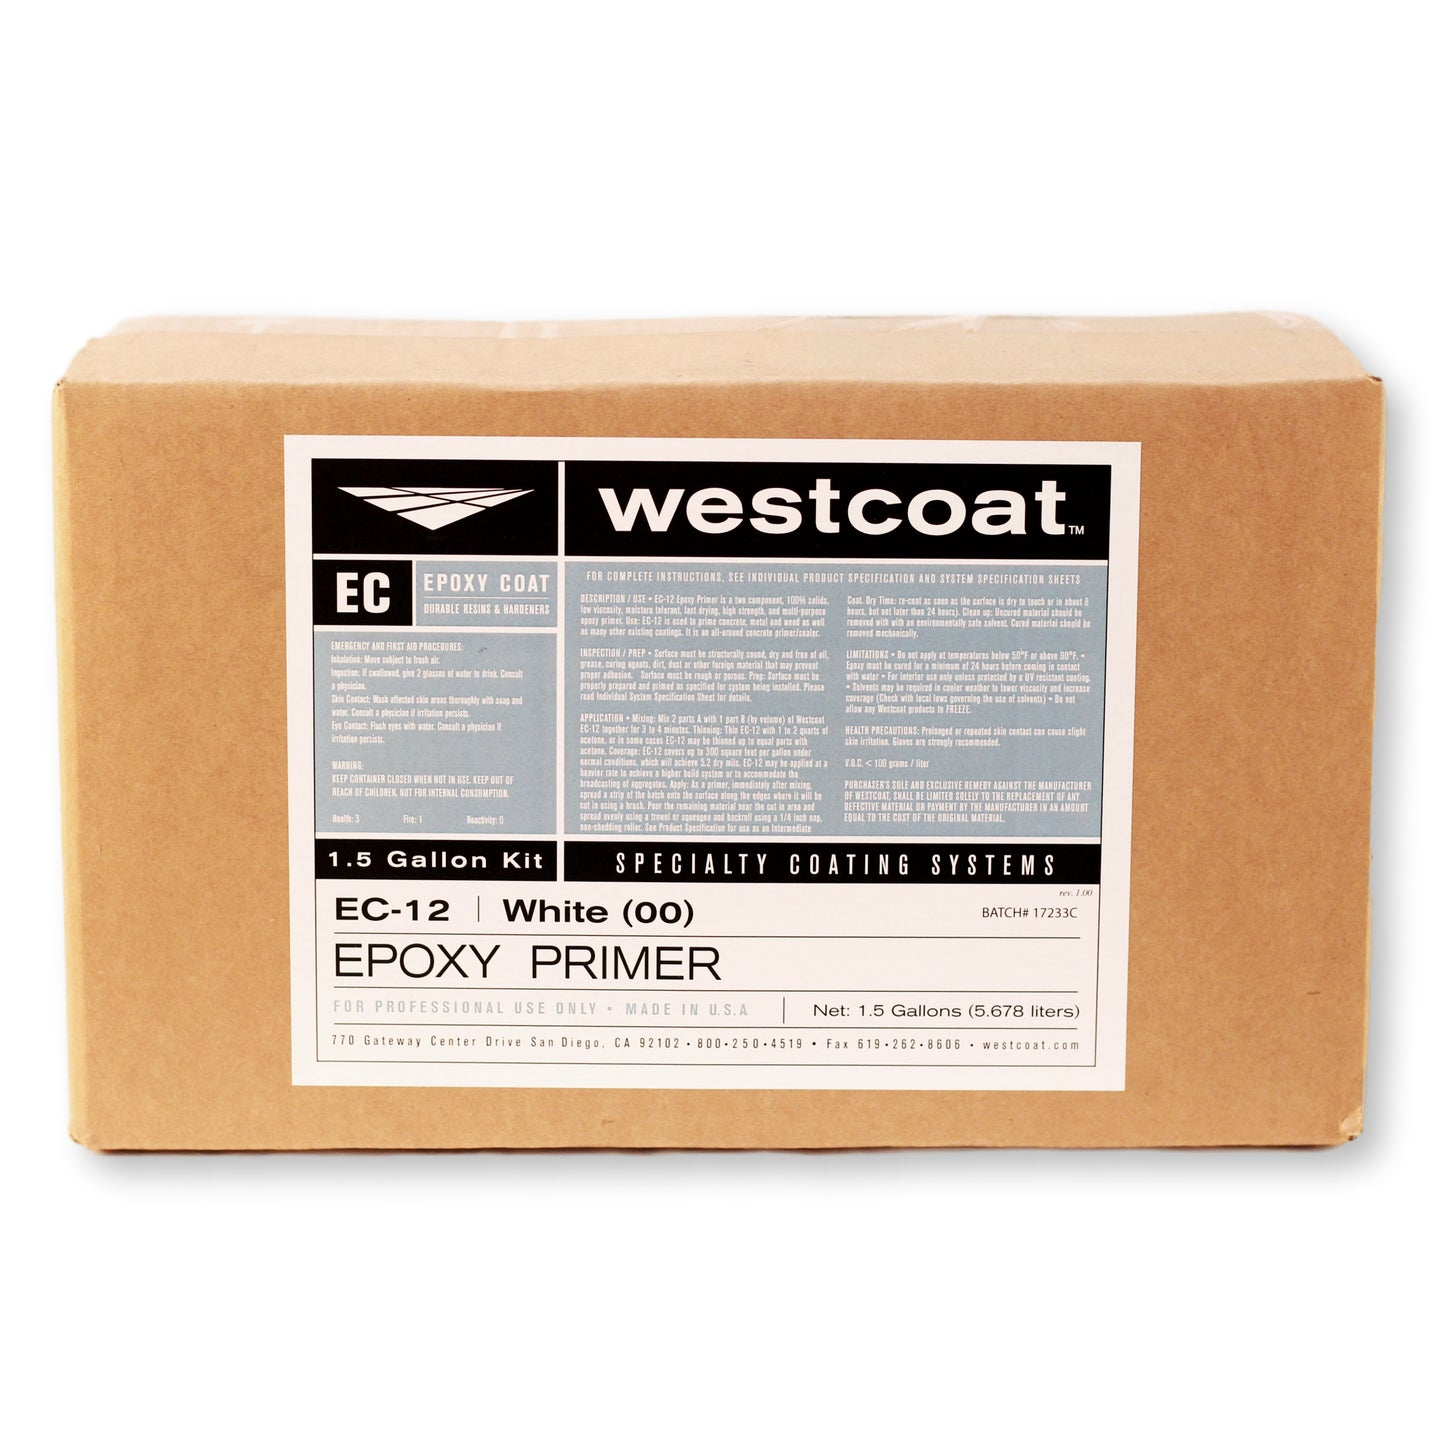 Westcoat EC-12 100% Solids Pigmented Epoxy Primer 1-1/2 Gallon Kit